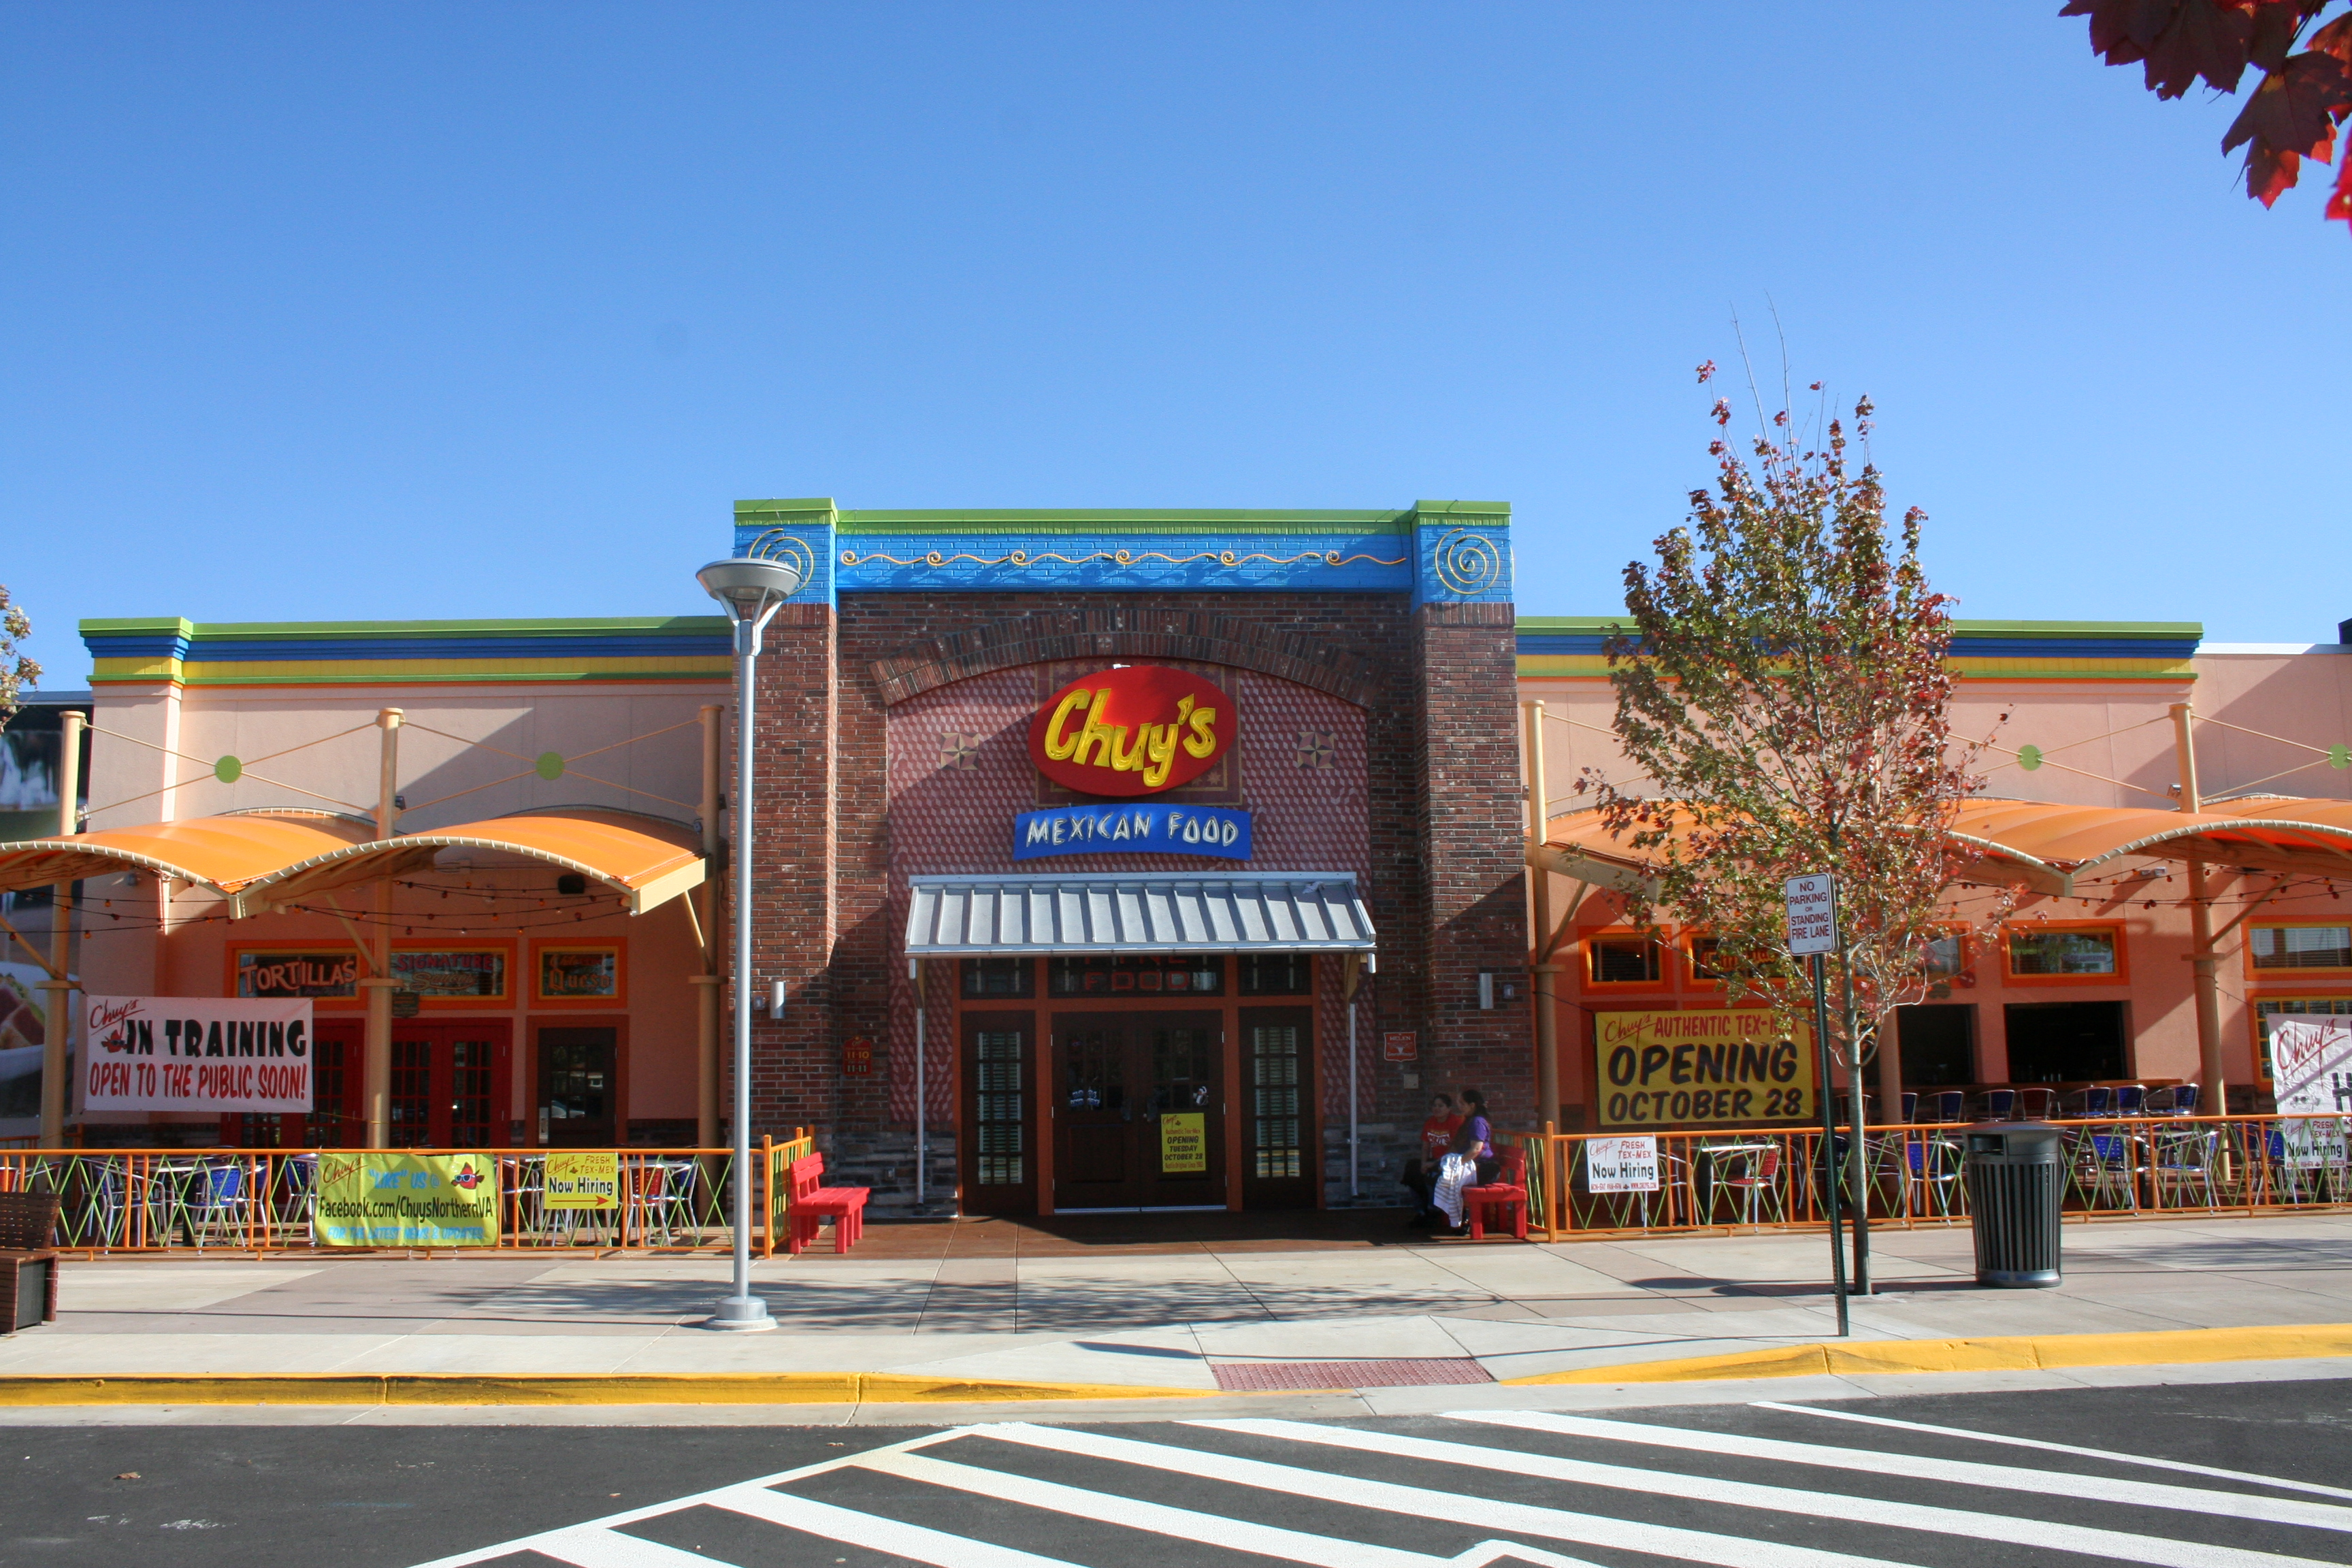 Chuy's Tex-Mex opens Oct. 28 in the new Springfield Town Center. (Photo: Mark Heckathorn/DC on Heels)